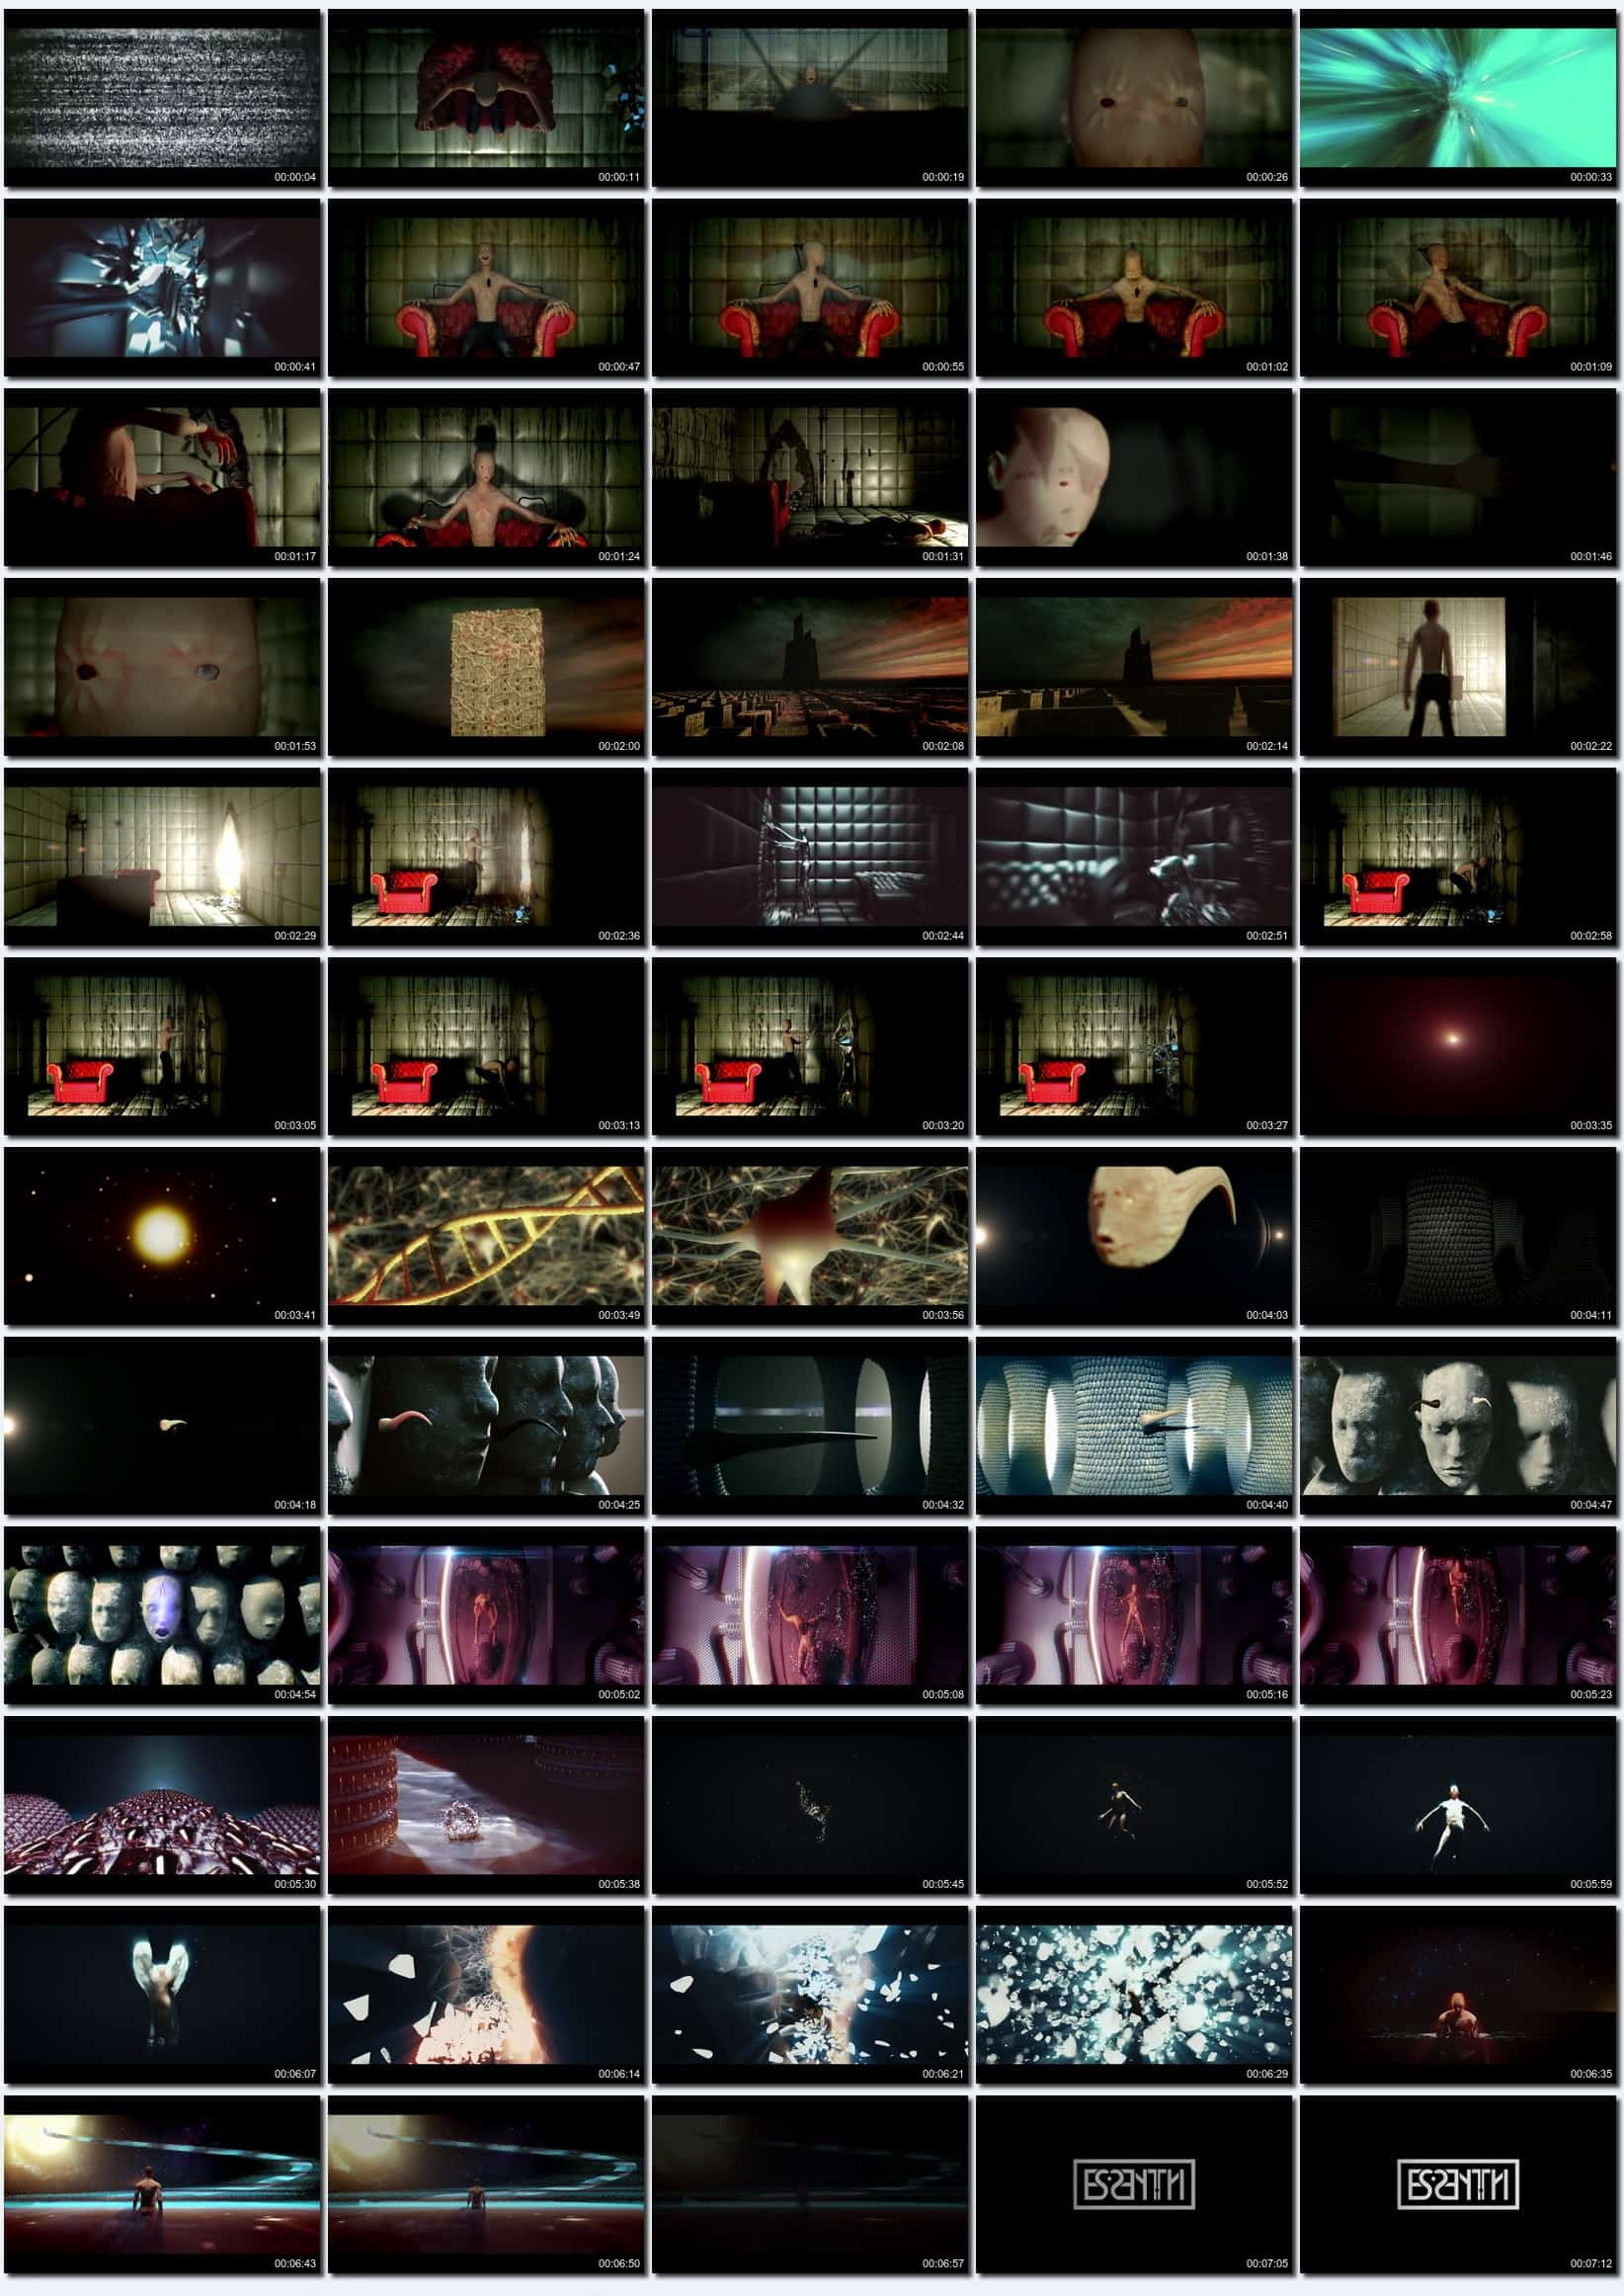 Spectrophobia Video Thumbnails